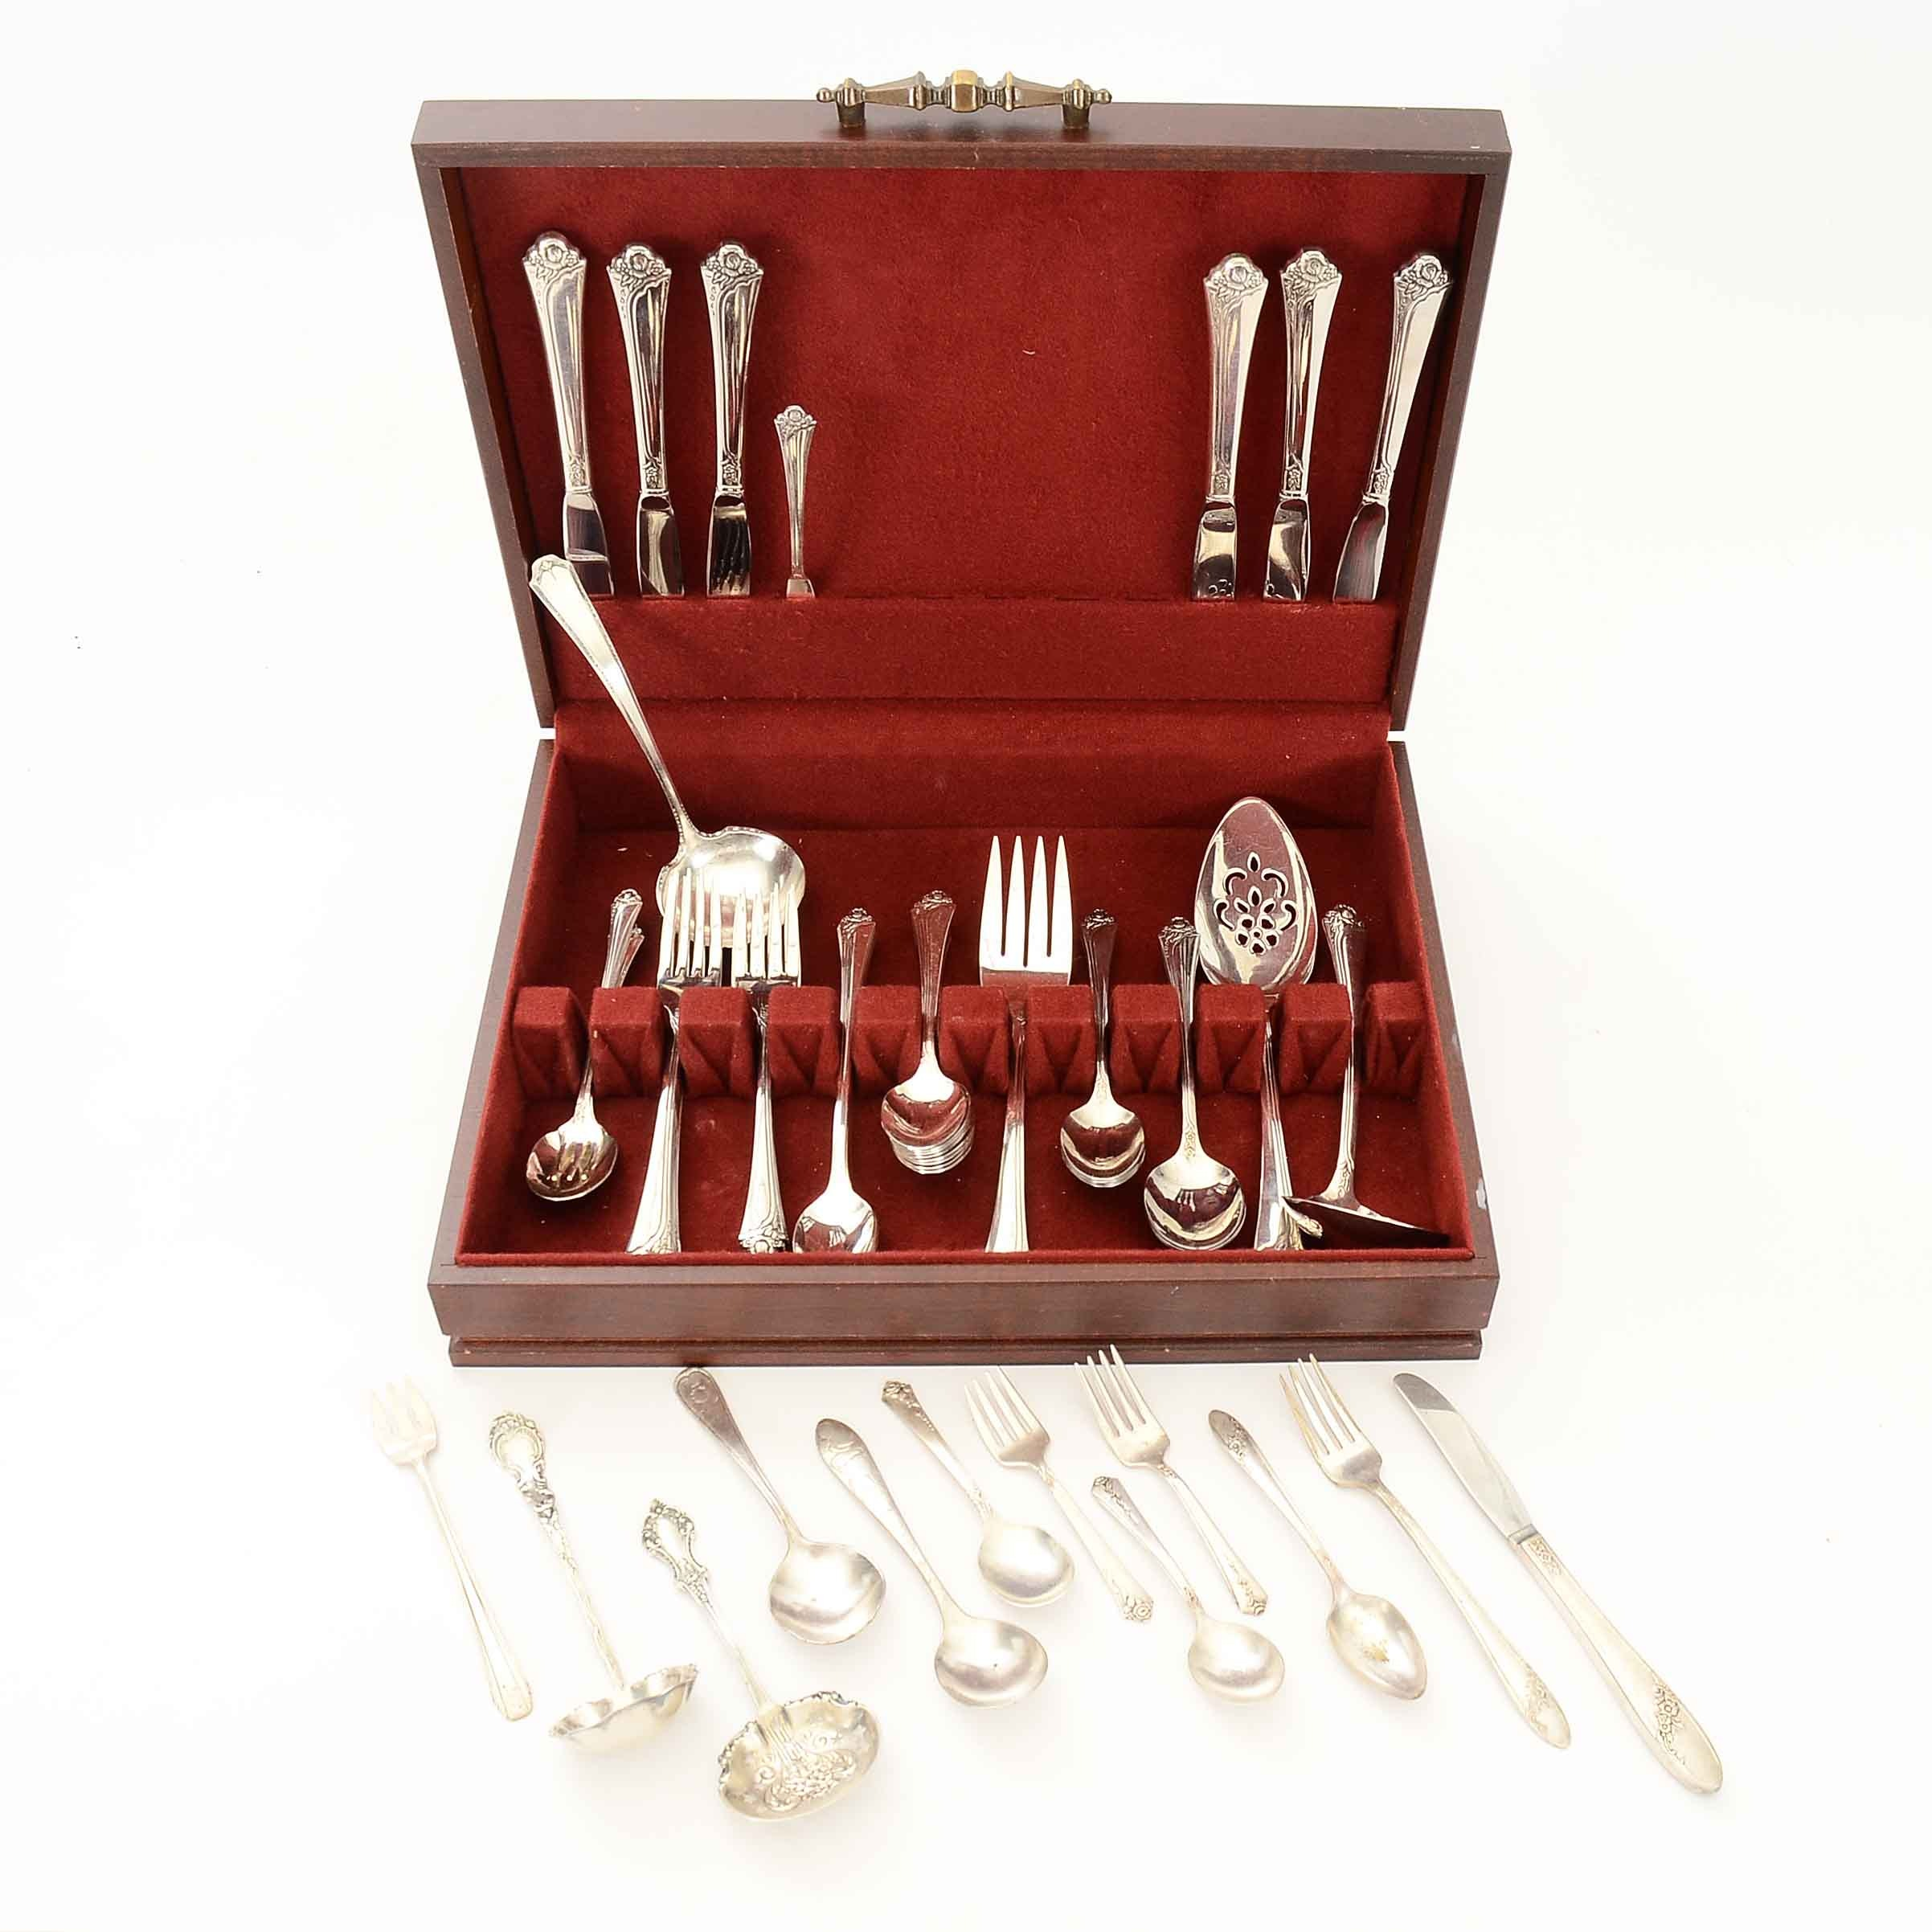 Collection of Oneida Community Silver Plate Flatware and More